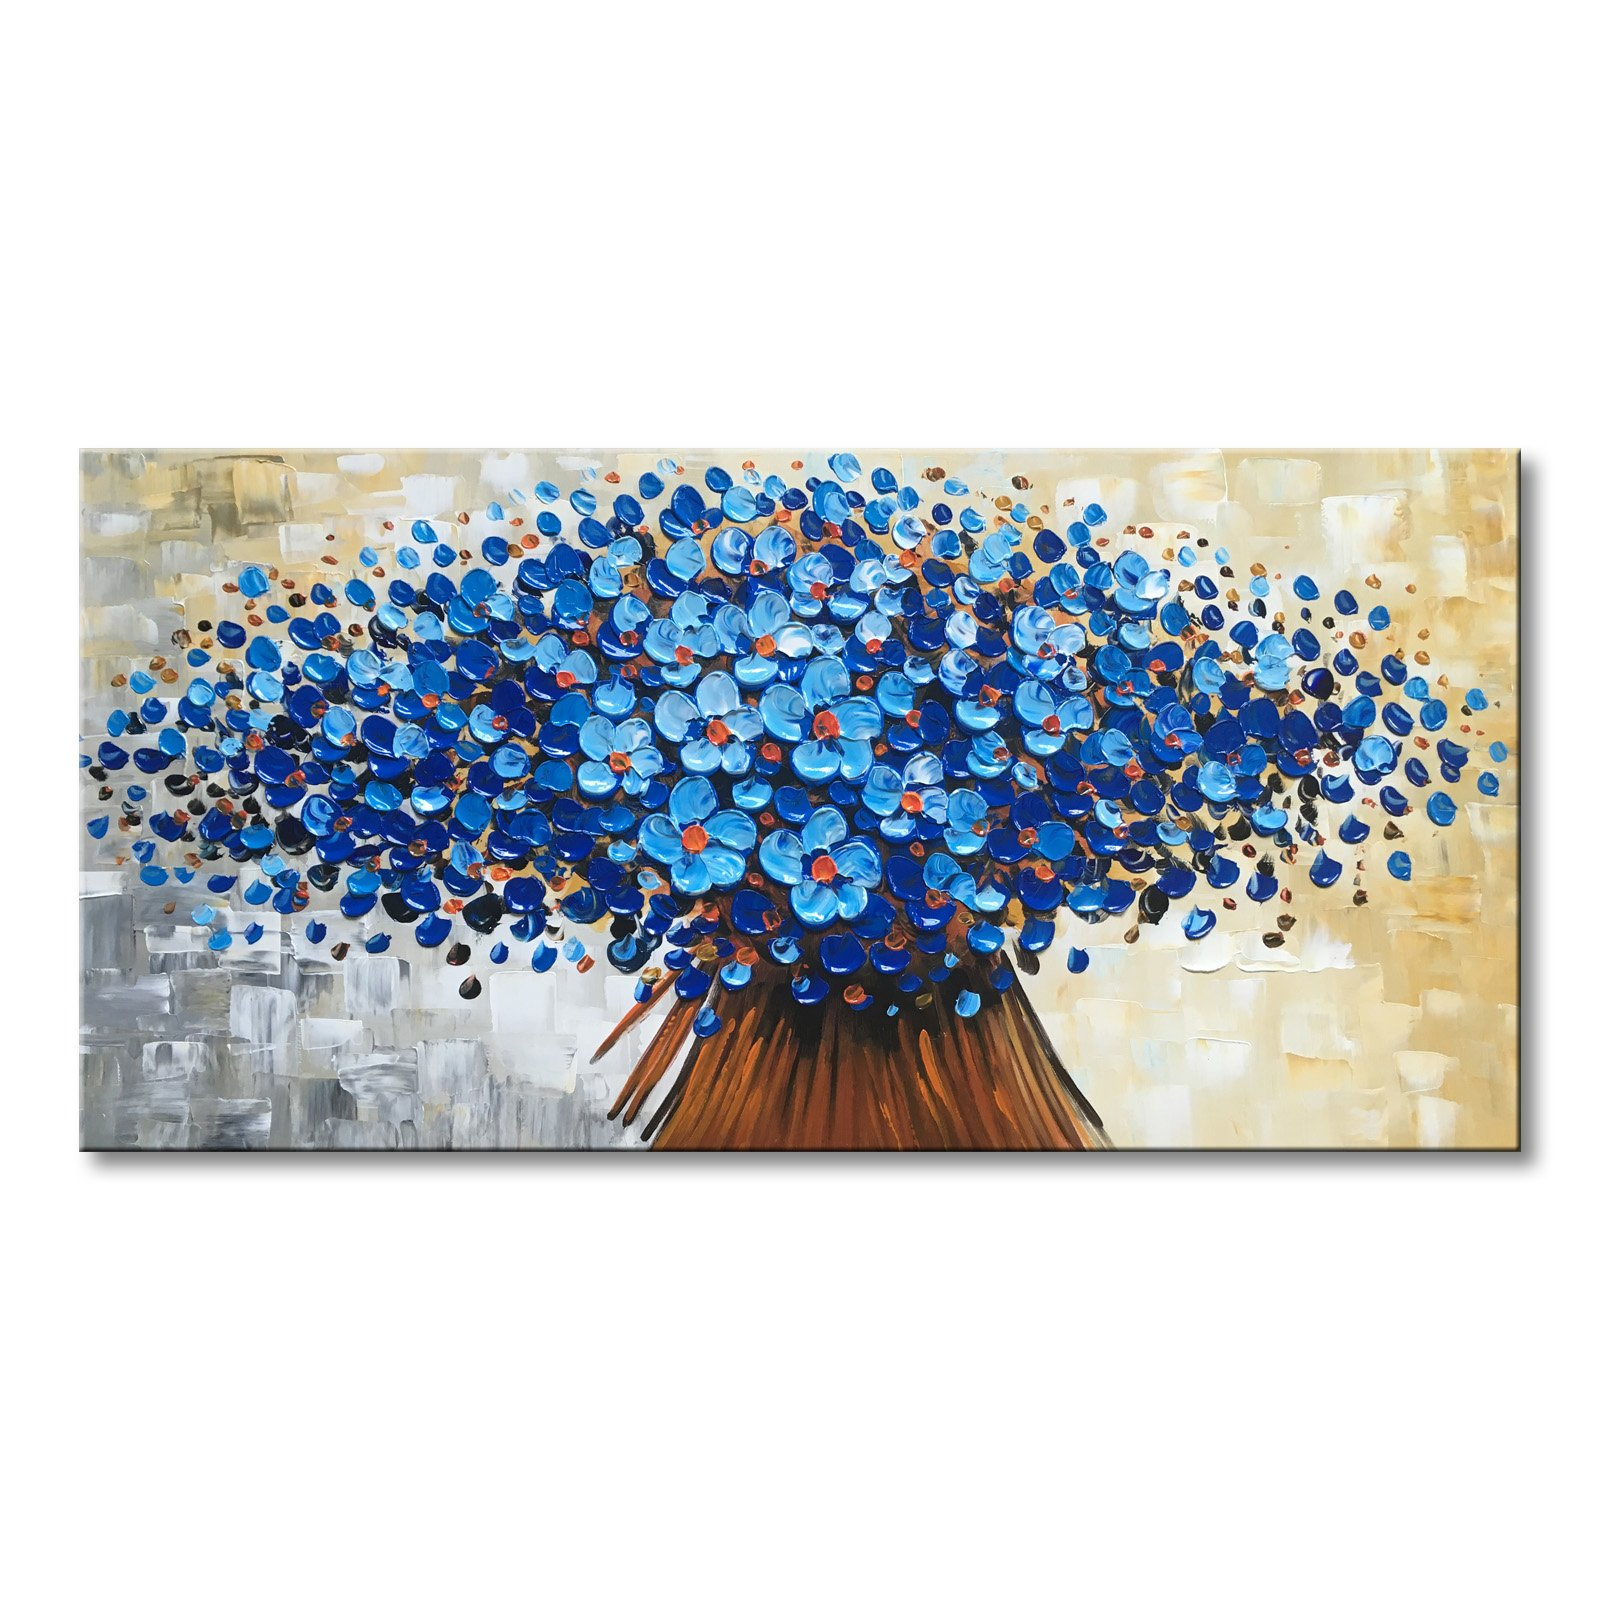 Winpeak Art Hand Painted Abstract Canvas Wall Art Modern Textured Blue Flower Oil Painting Contemporary Artwork Floral Hanging Home Decoration Stretched and Framed Ready to Hang (48'' W x 24'' H, Blue)